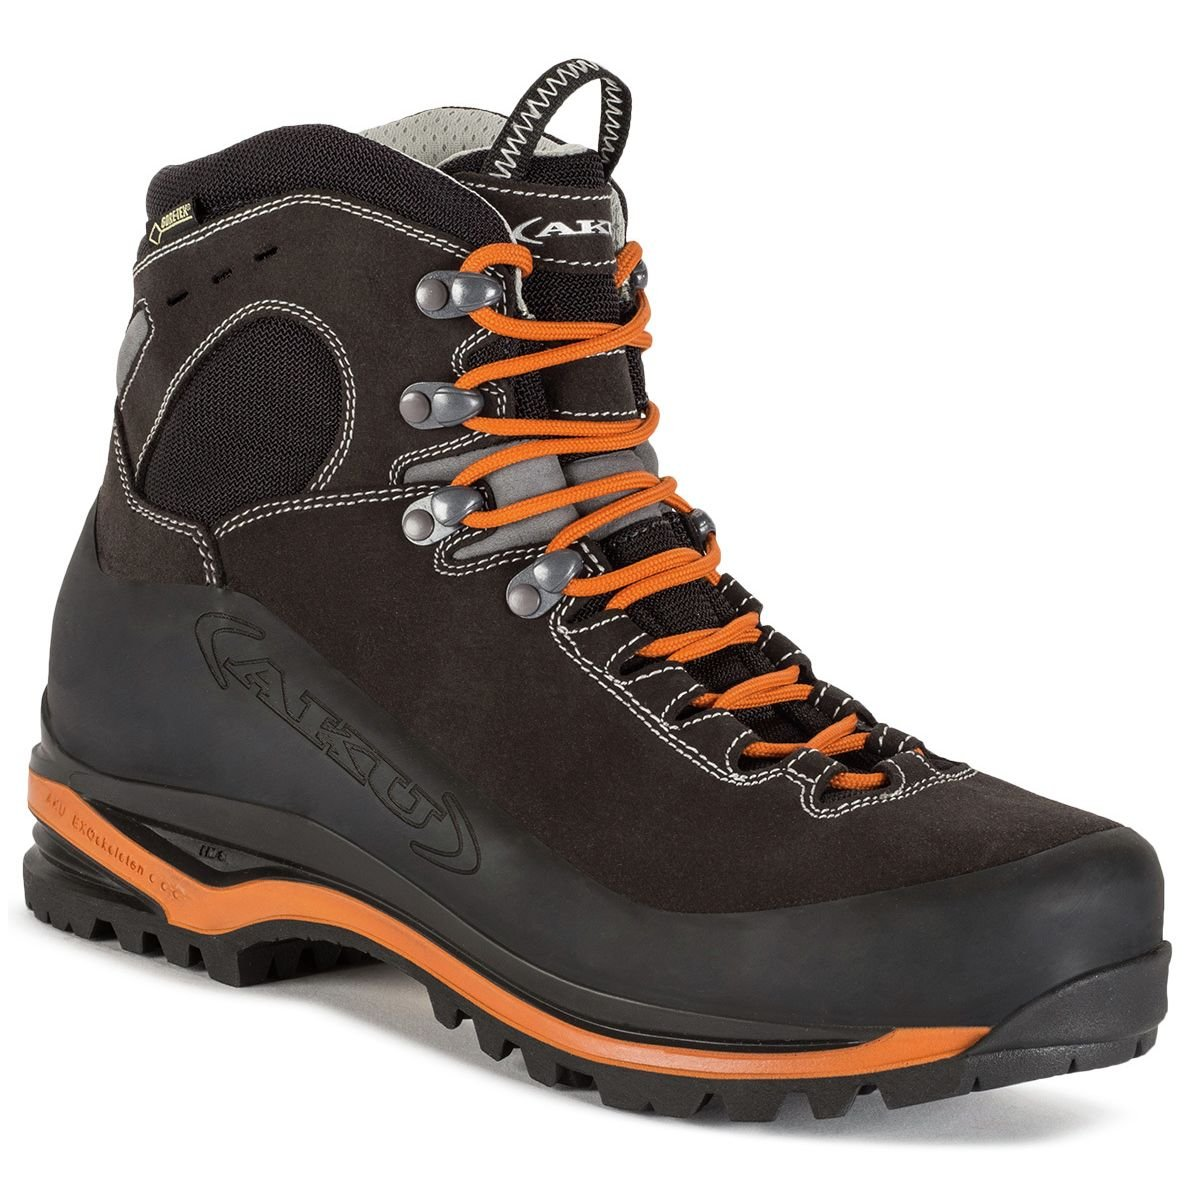 AKU Superalp GTX Backpacking Boot - Men's GU0115-ANT-7